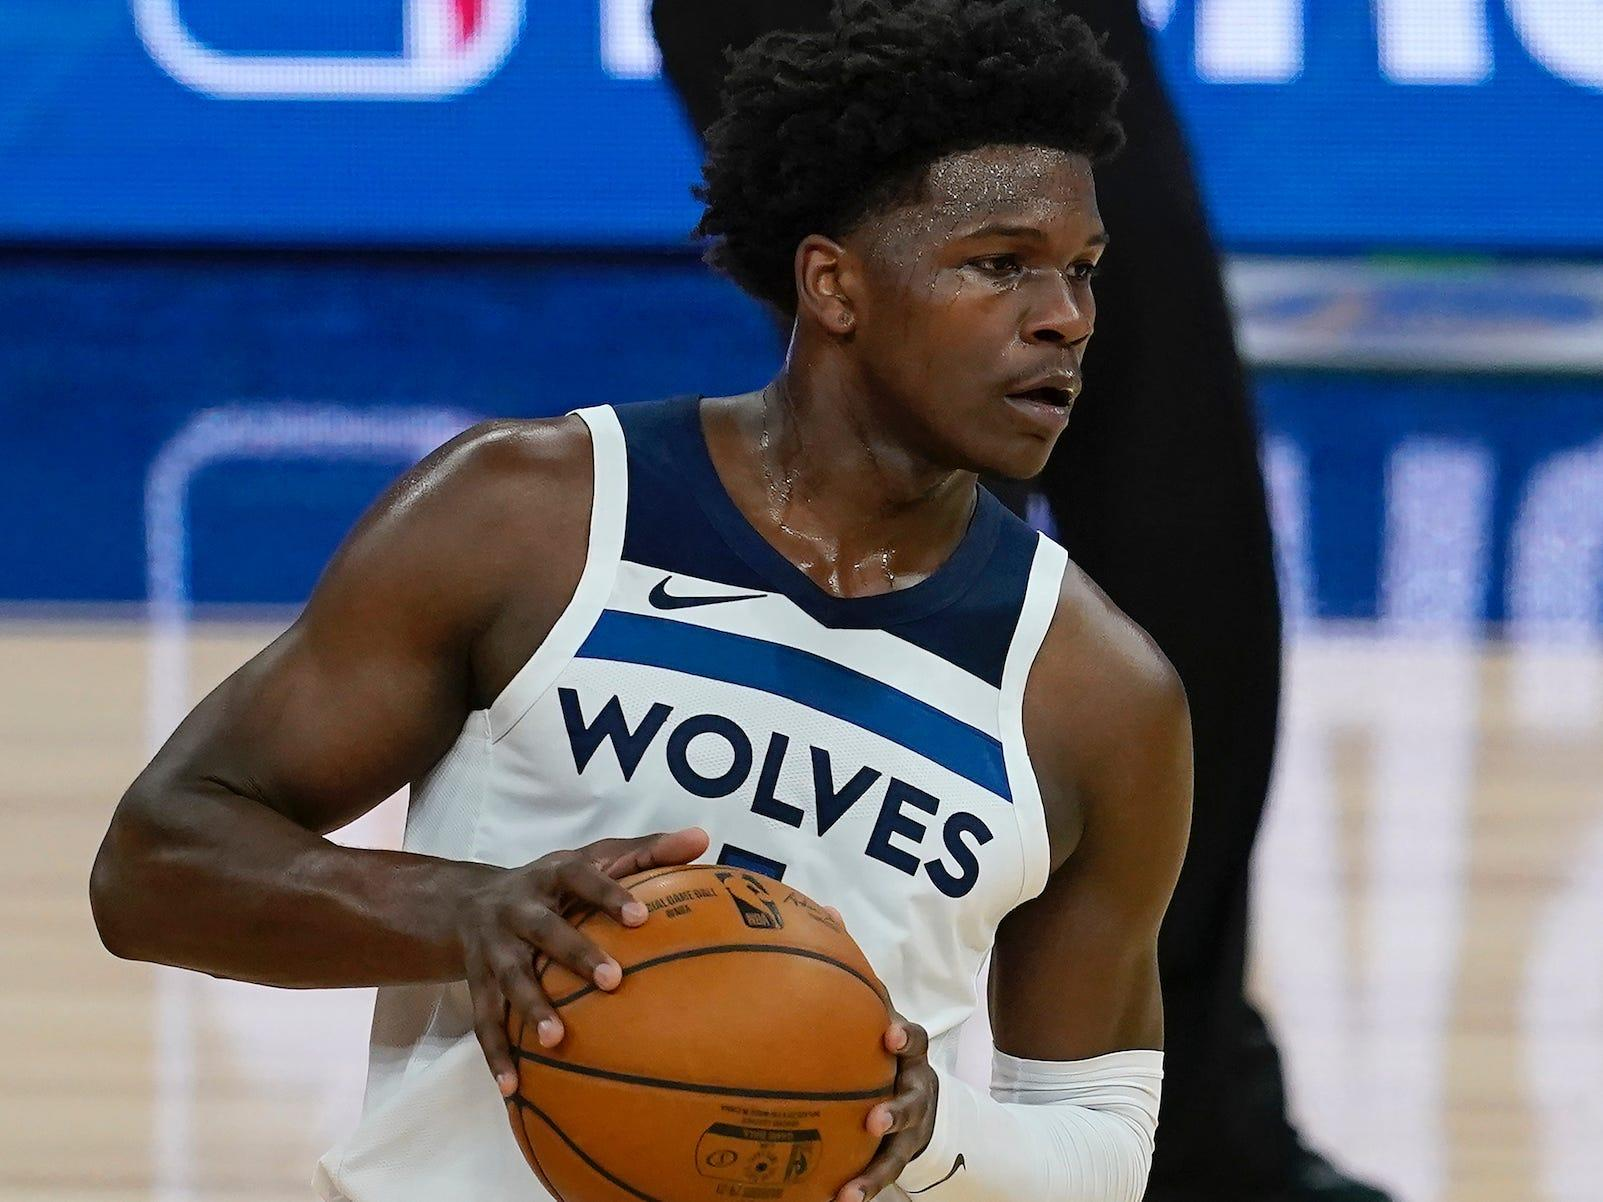 Timberwolves rookie Anthony Edwards dumped a full water bottle on his new coach because he was confused about an NBA tradition